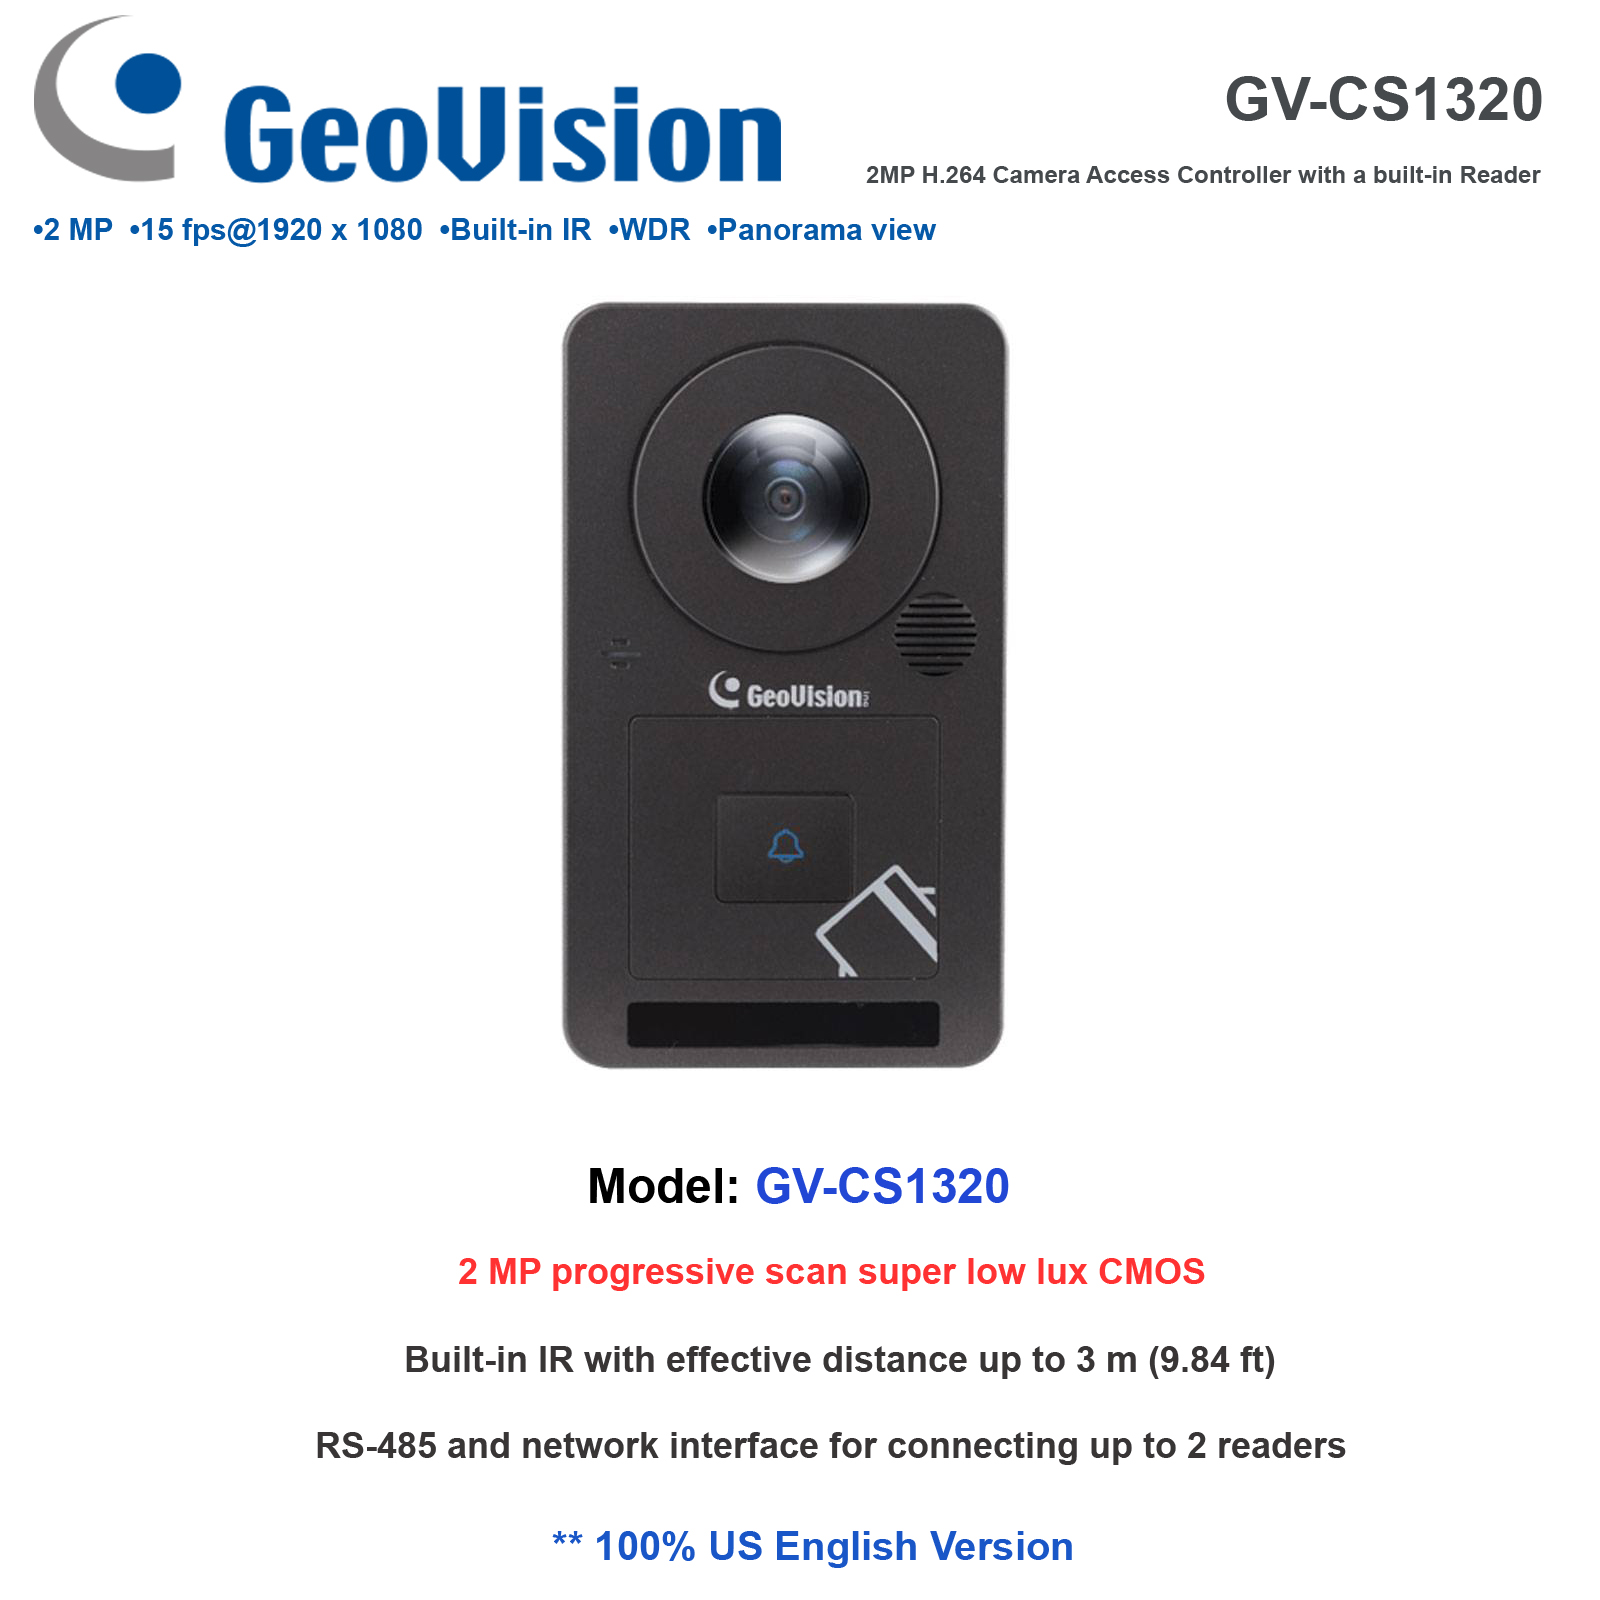 Details about Geovision GV-CS1320 2MP H 265 1080P 180˚ Panoramic IP Camera  Reader Controller